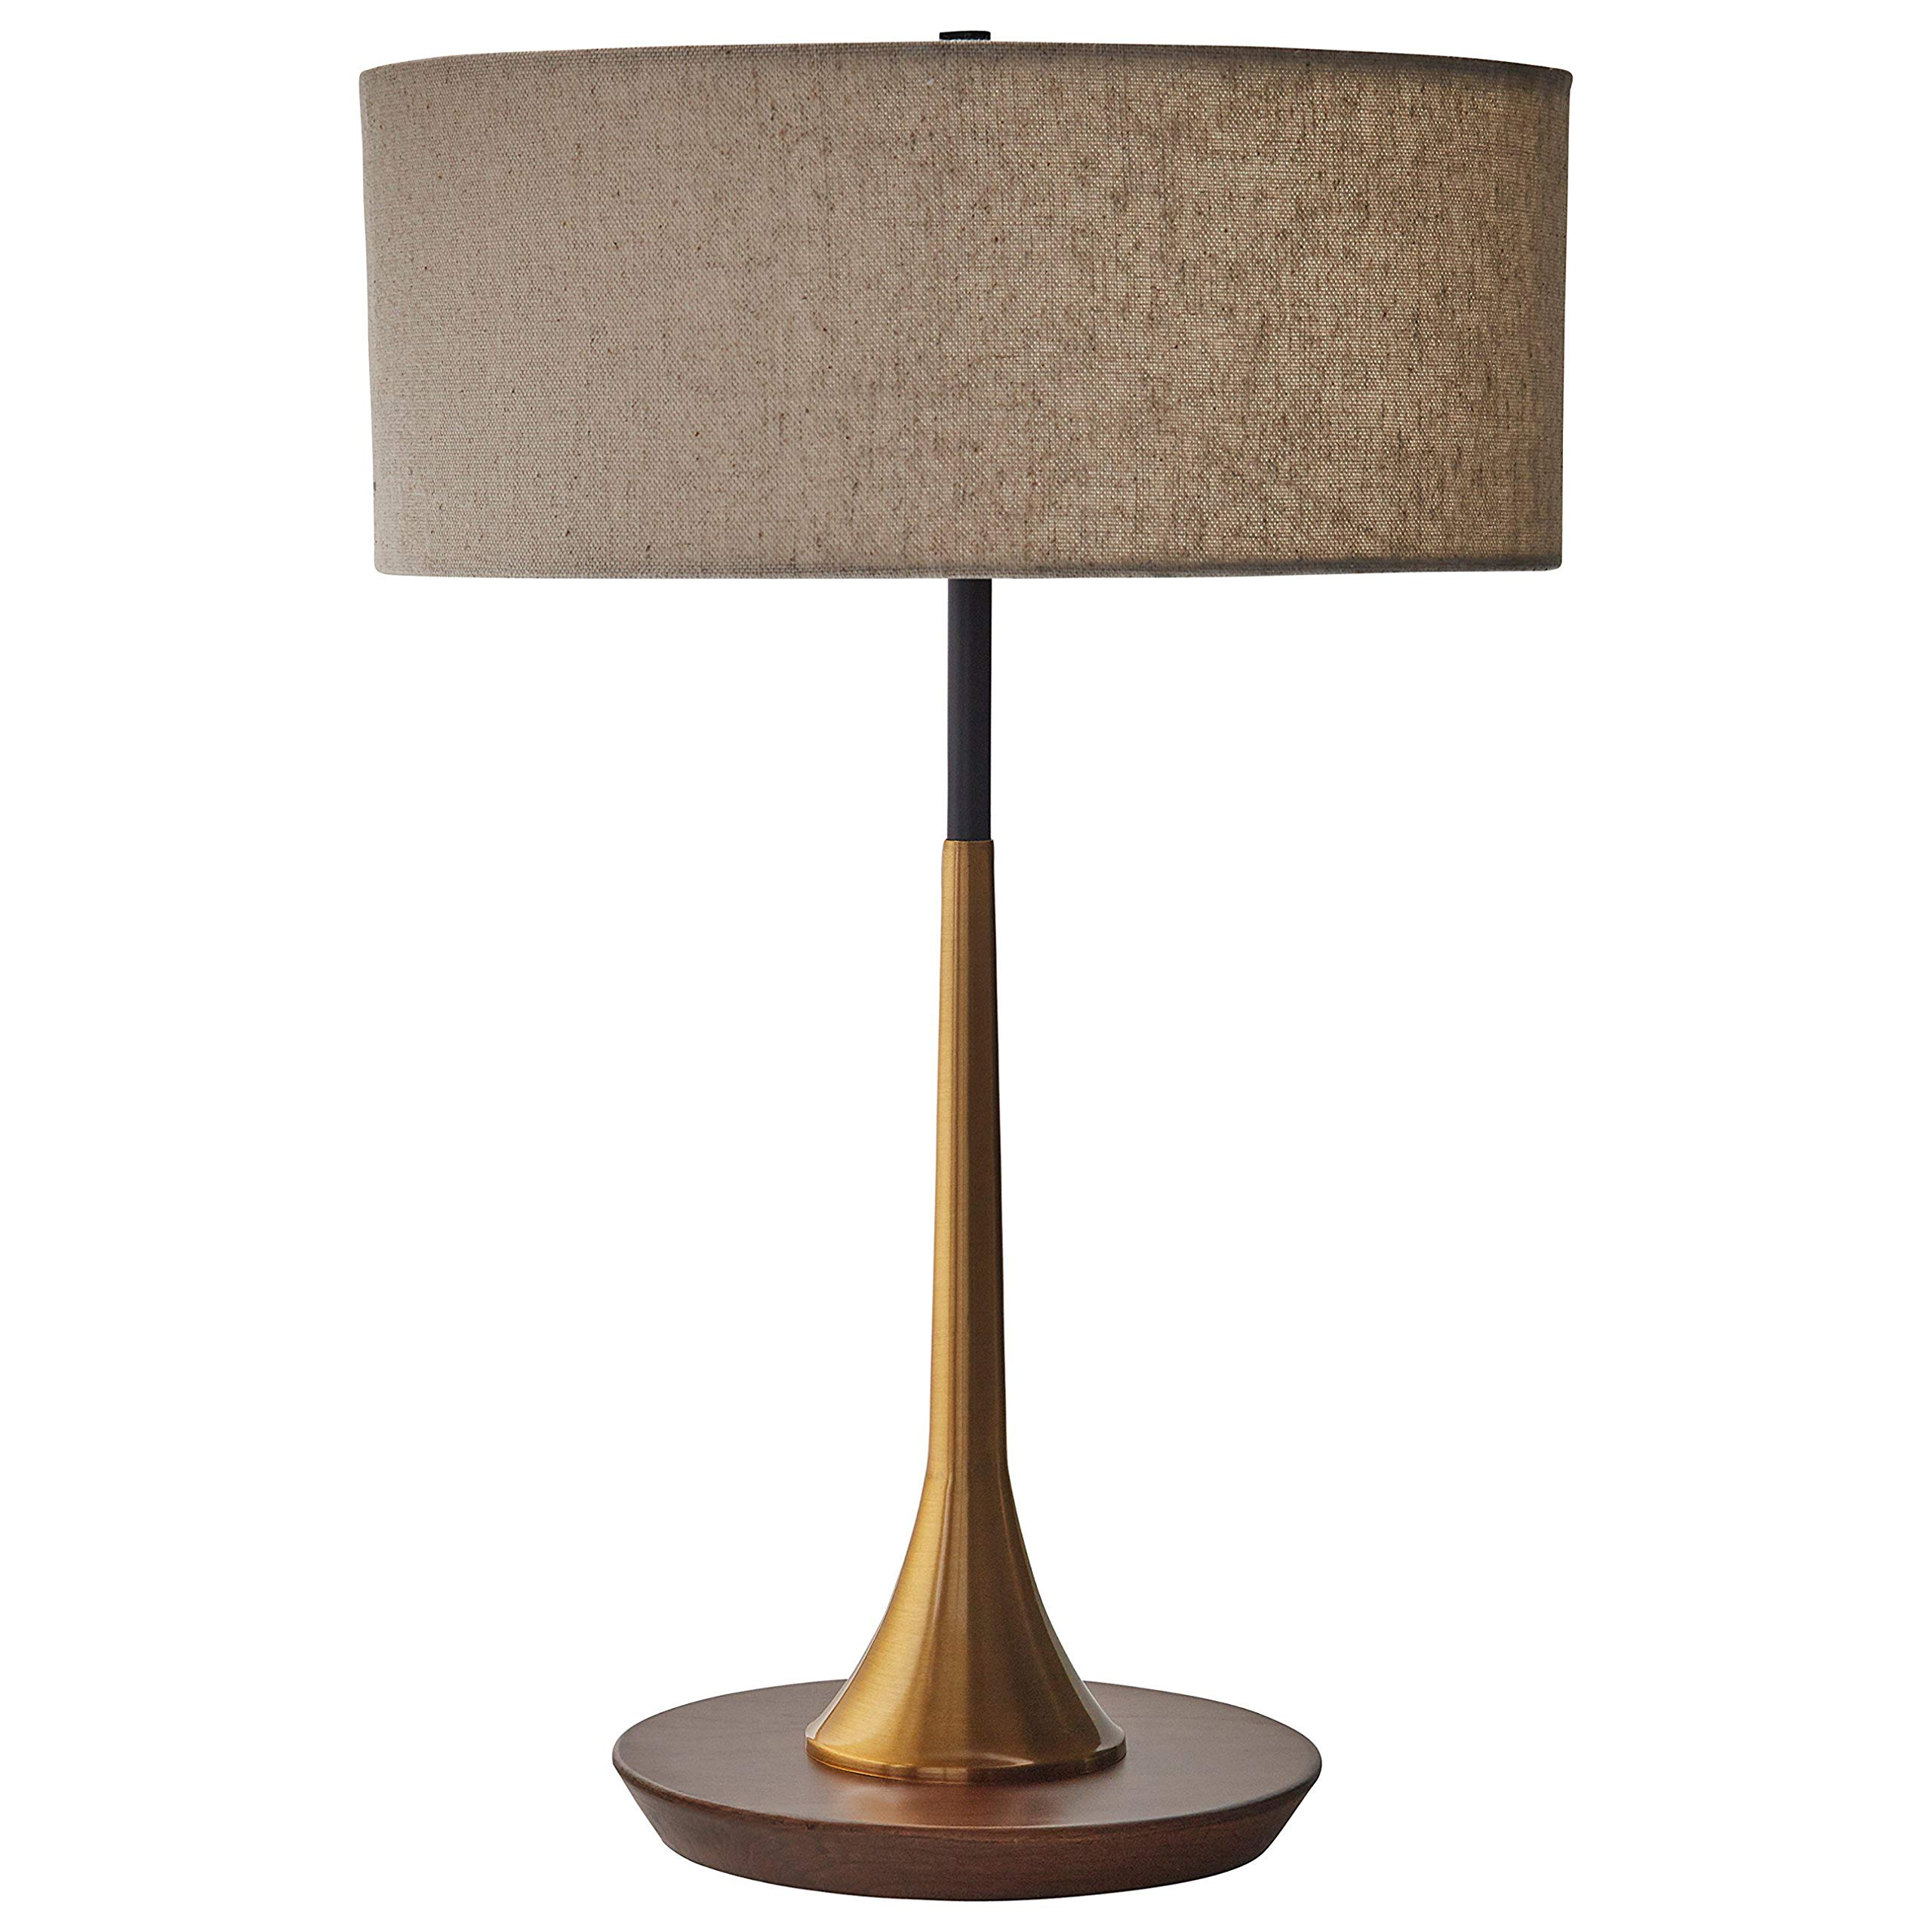 Rivet Mid-Century Modern Curved Brass Table Desk Lamp With LED Light Bulb - 14.3 x 21.7 Inches, Brass and Walnut